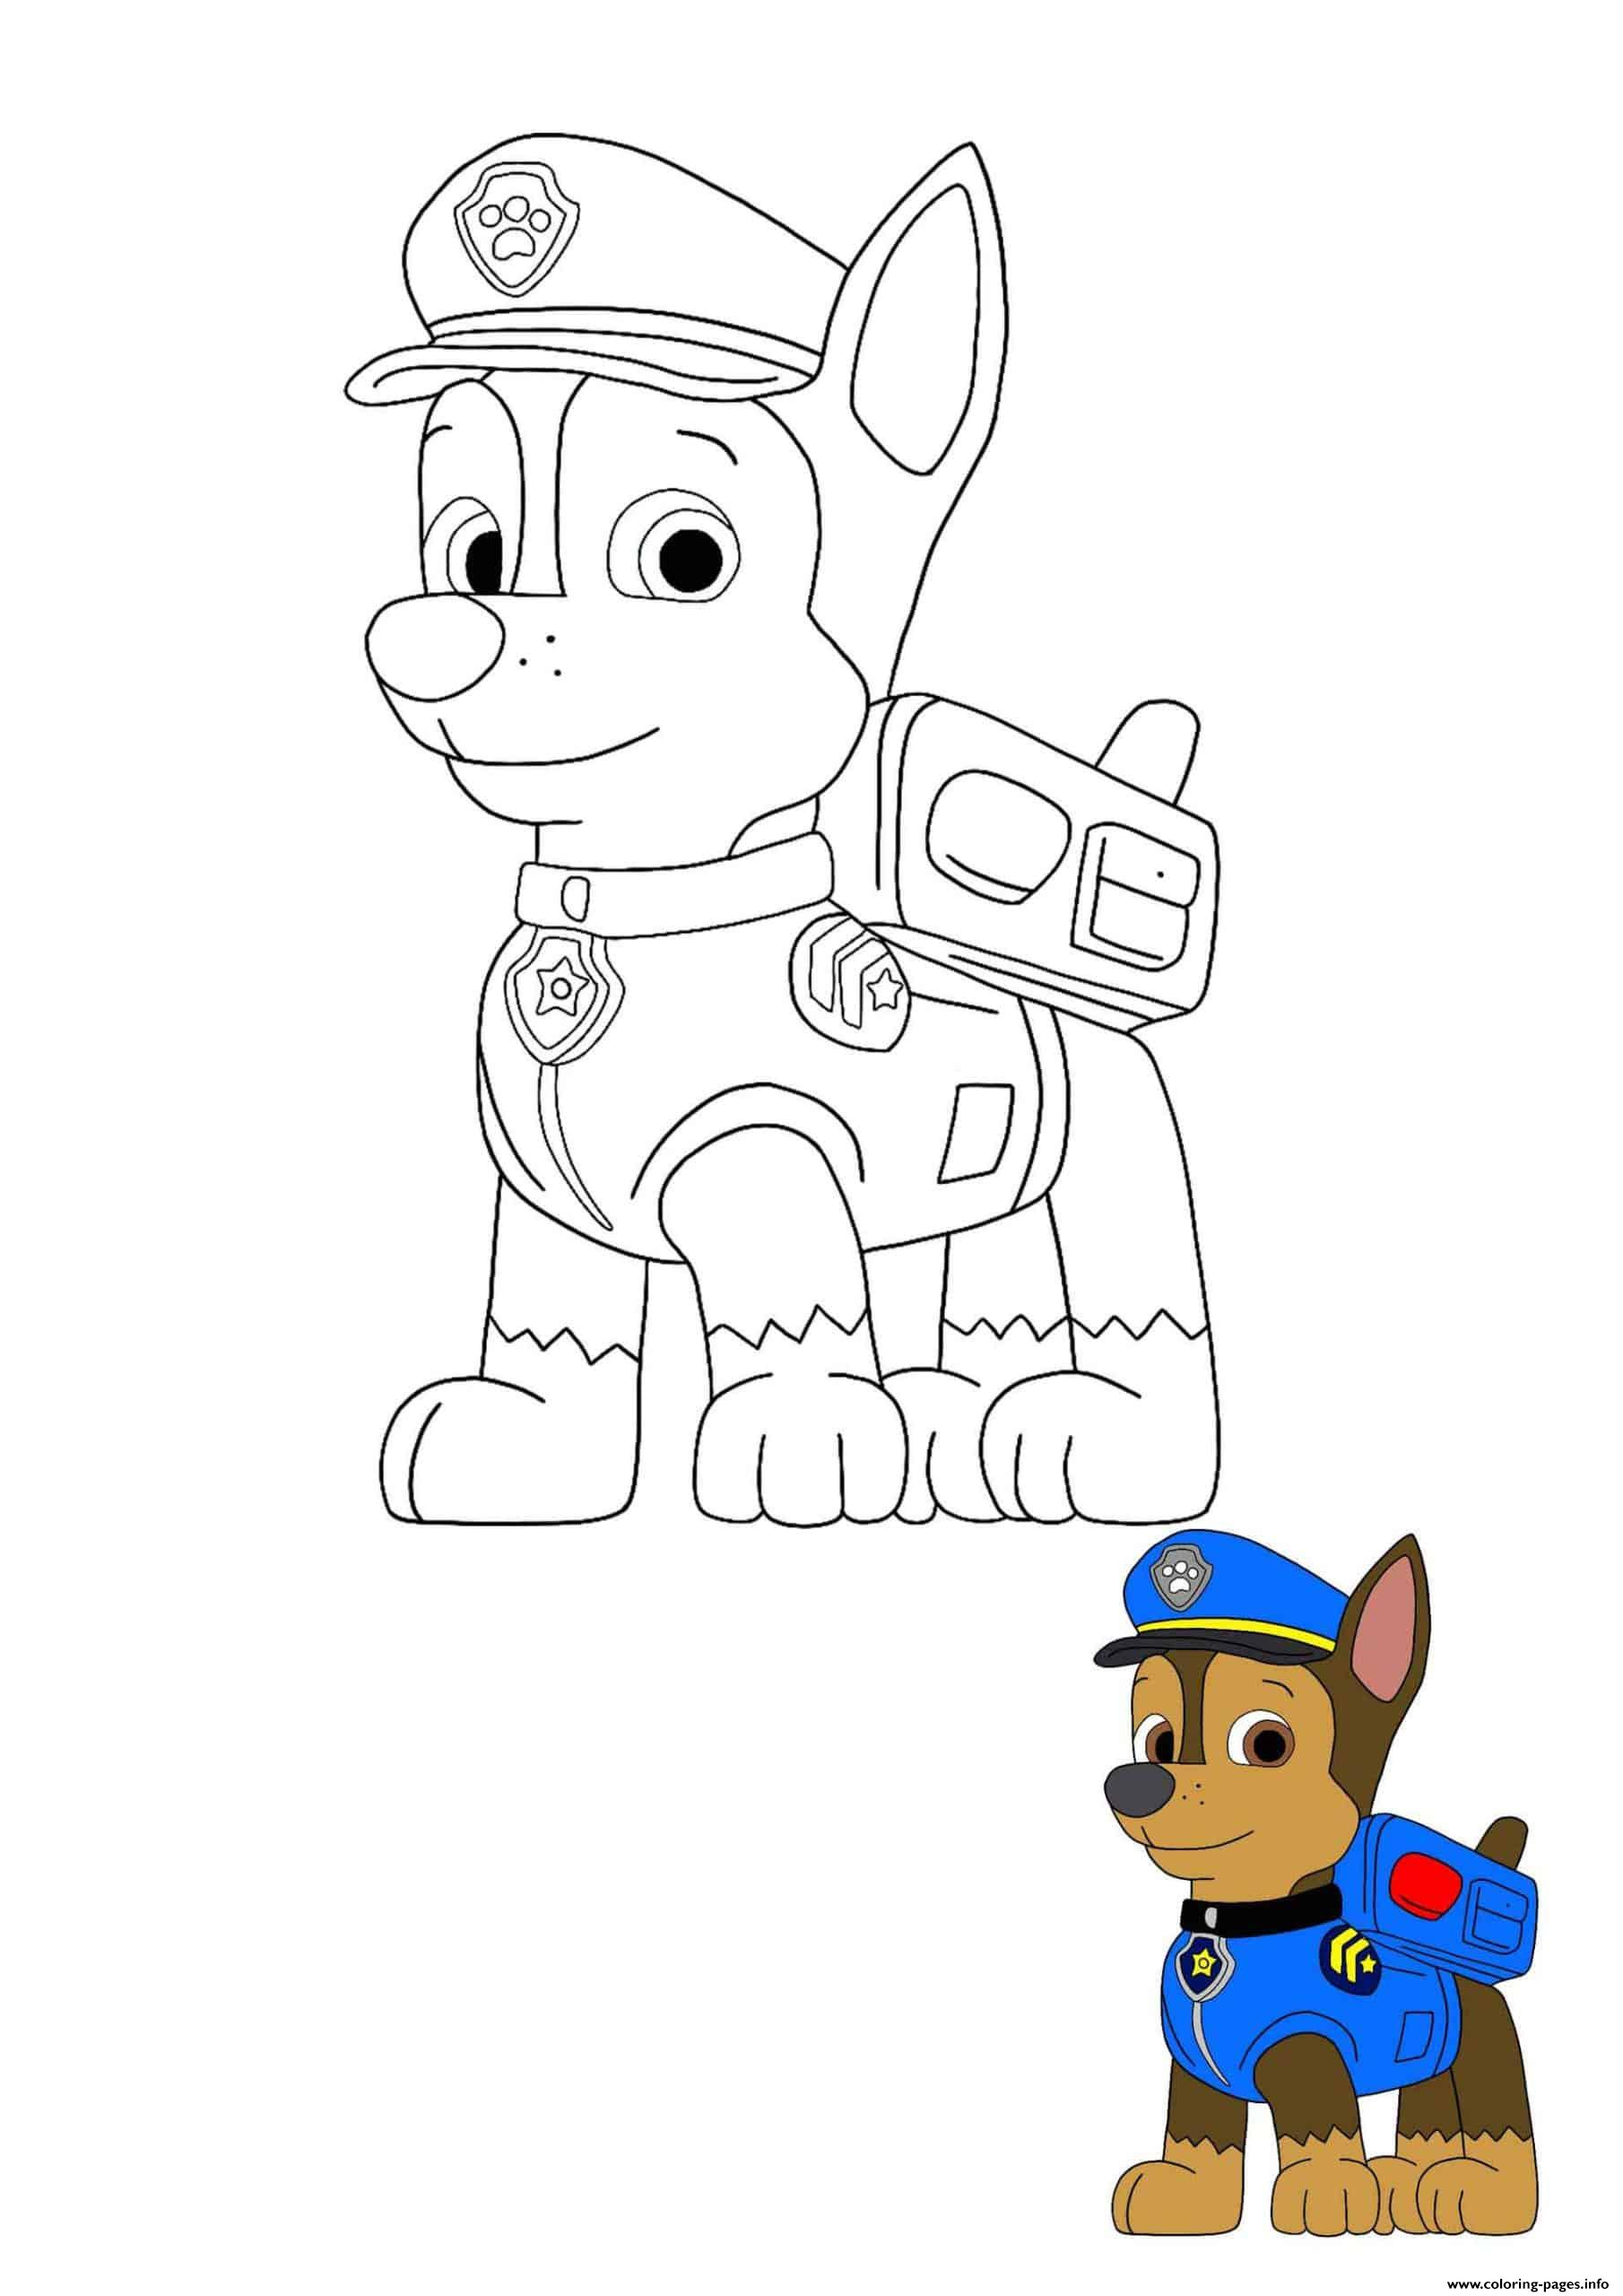 Chase Super Spy Paw Patrol Member No 2 Coloring Pages ...